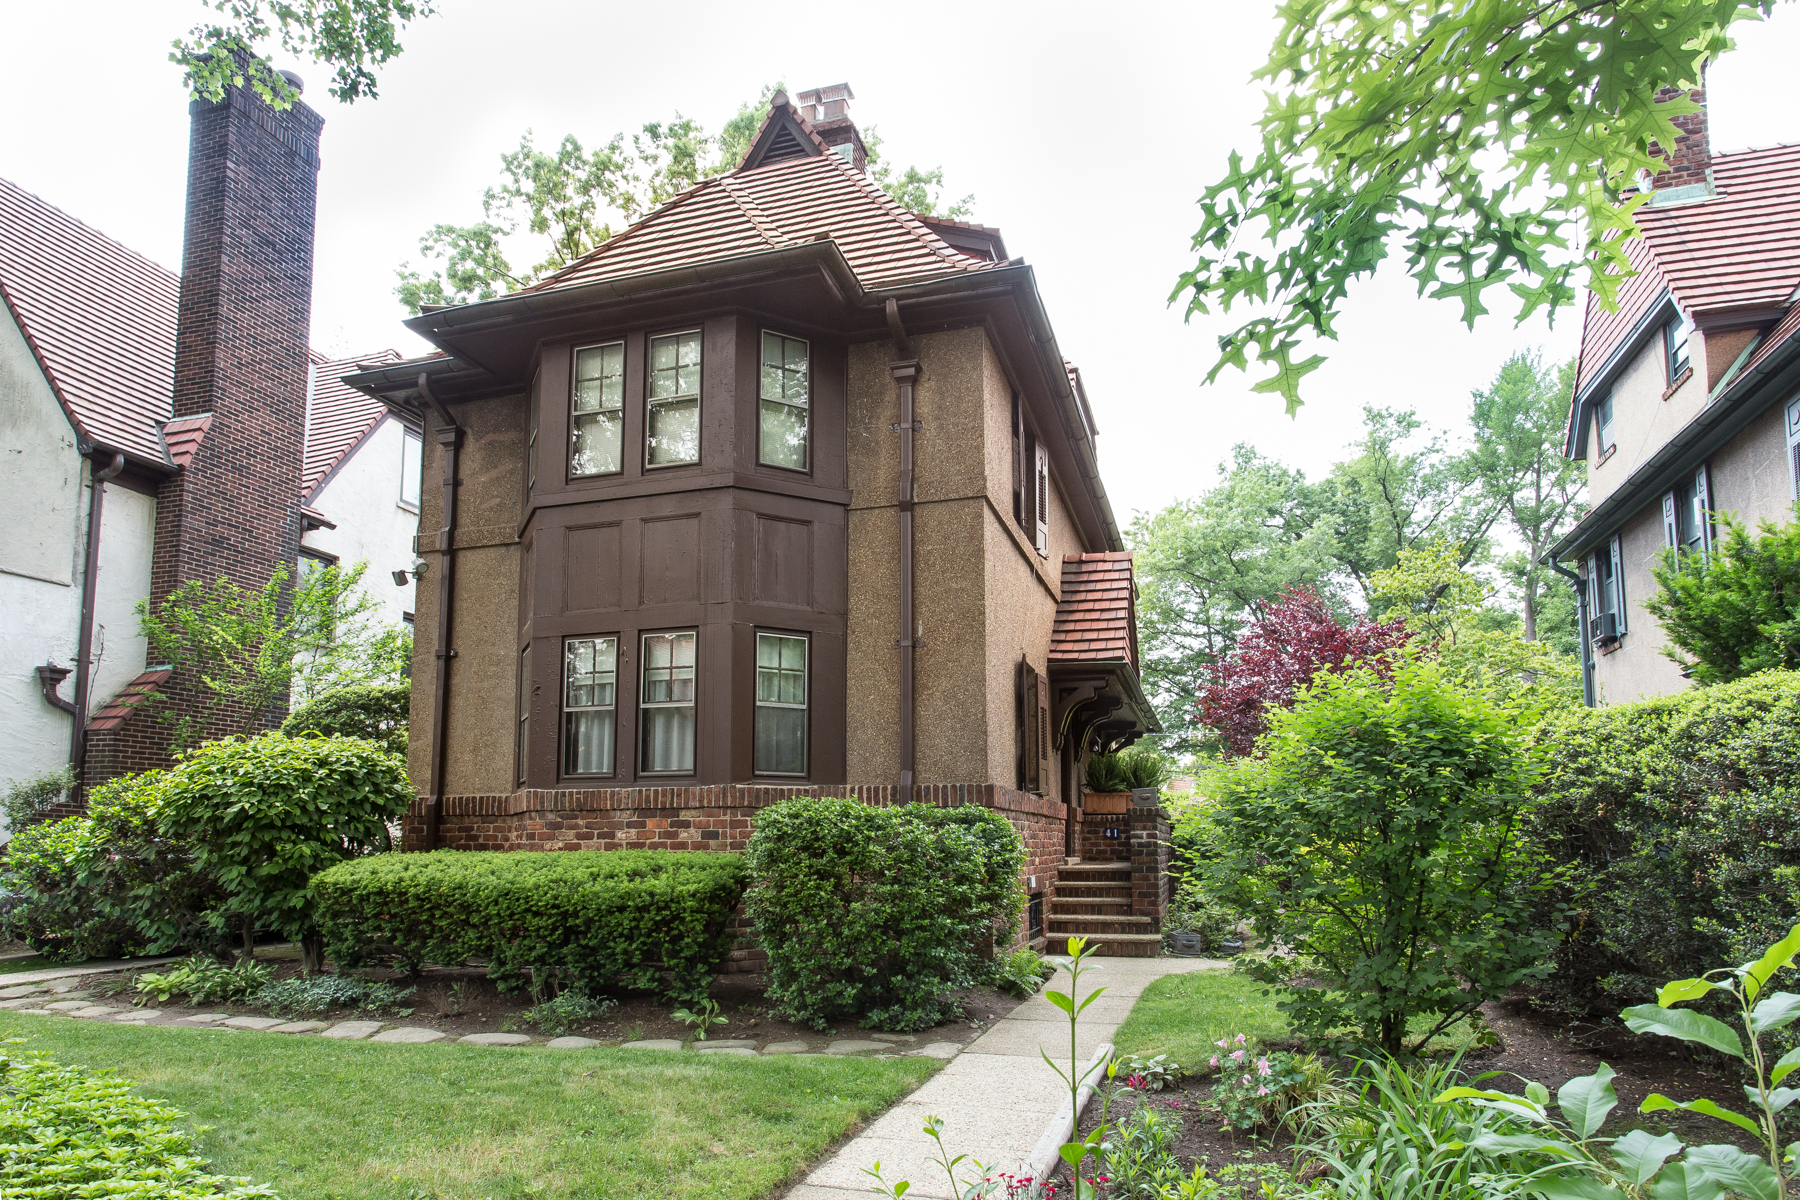 """Single Family Home for Sale at """"QUIET COUNTRY LIVING IN THE HEART OF NYC"""" 41 Slocum Crescent, Forest Hills Gardens, Forest Hills Gardens, Forest Hills, New York 11375 United States"""